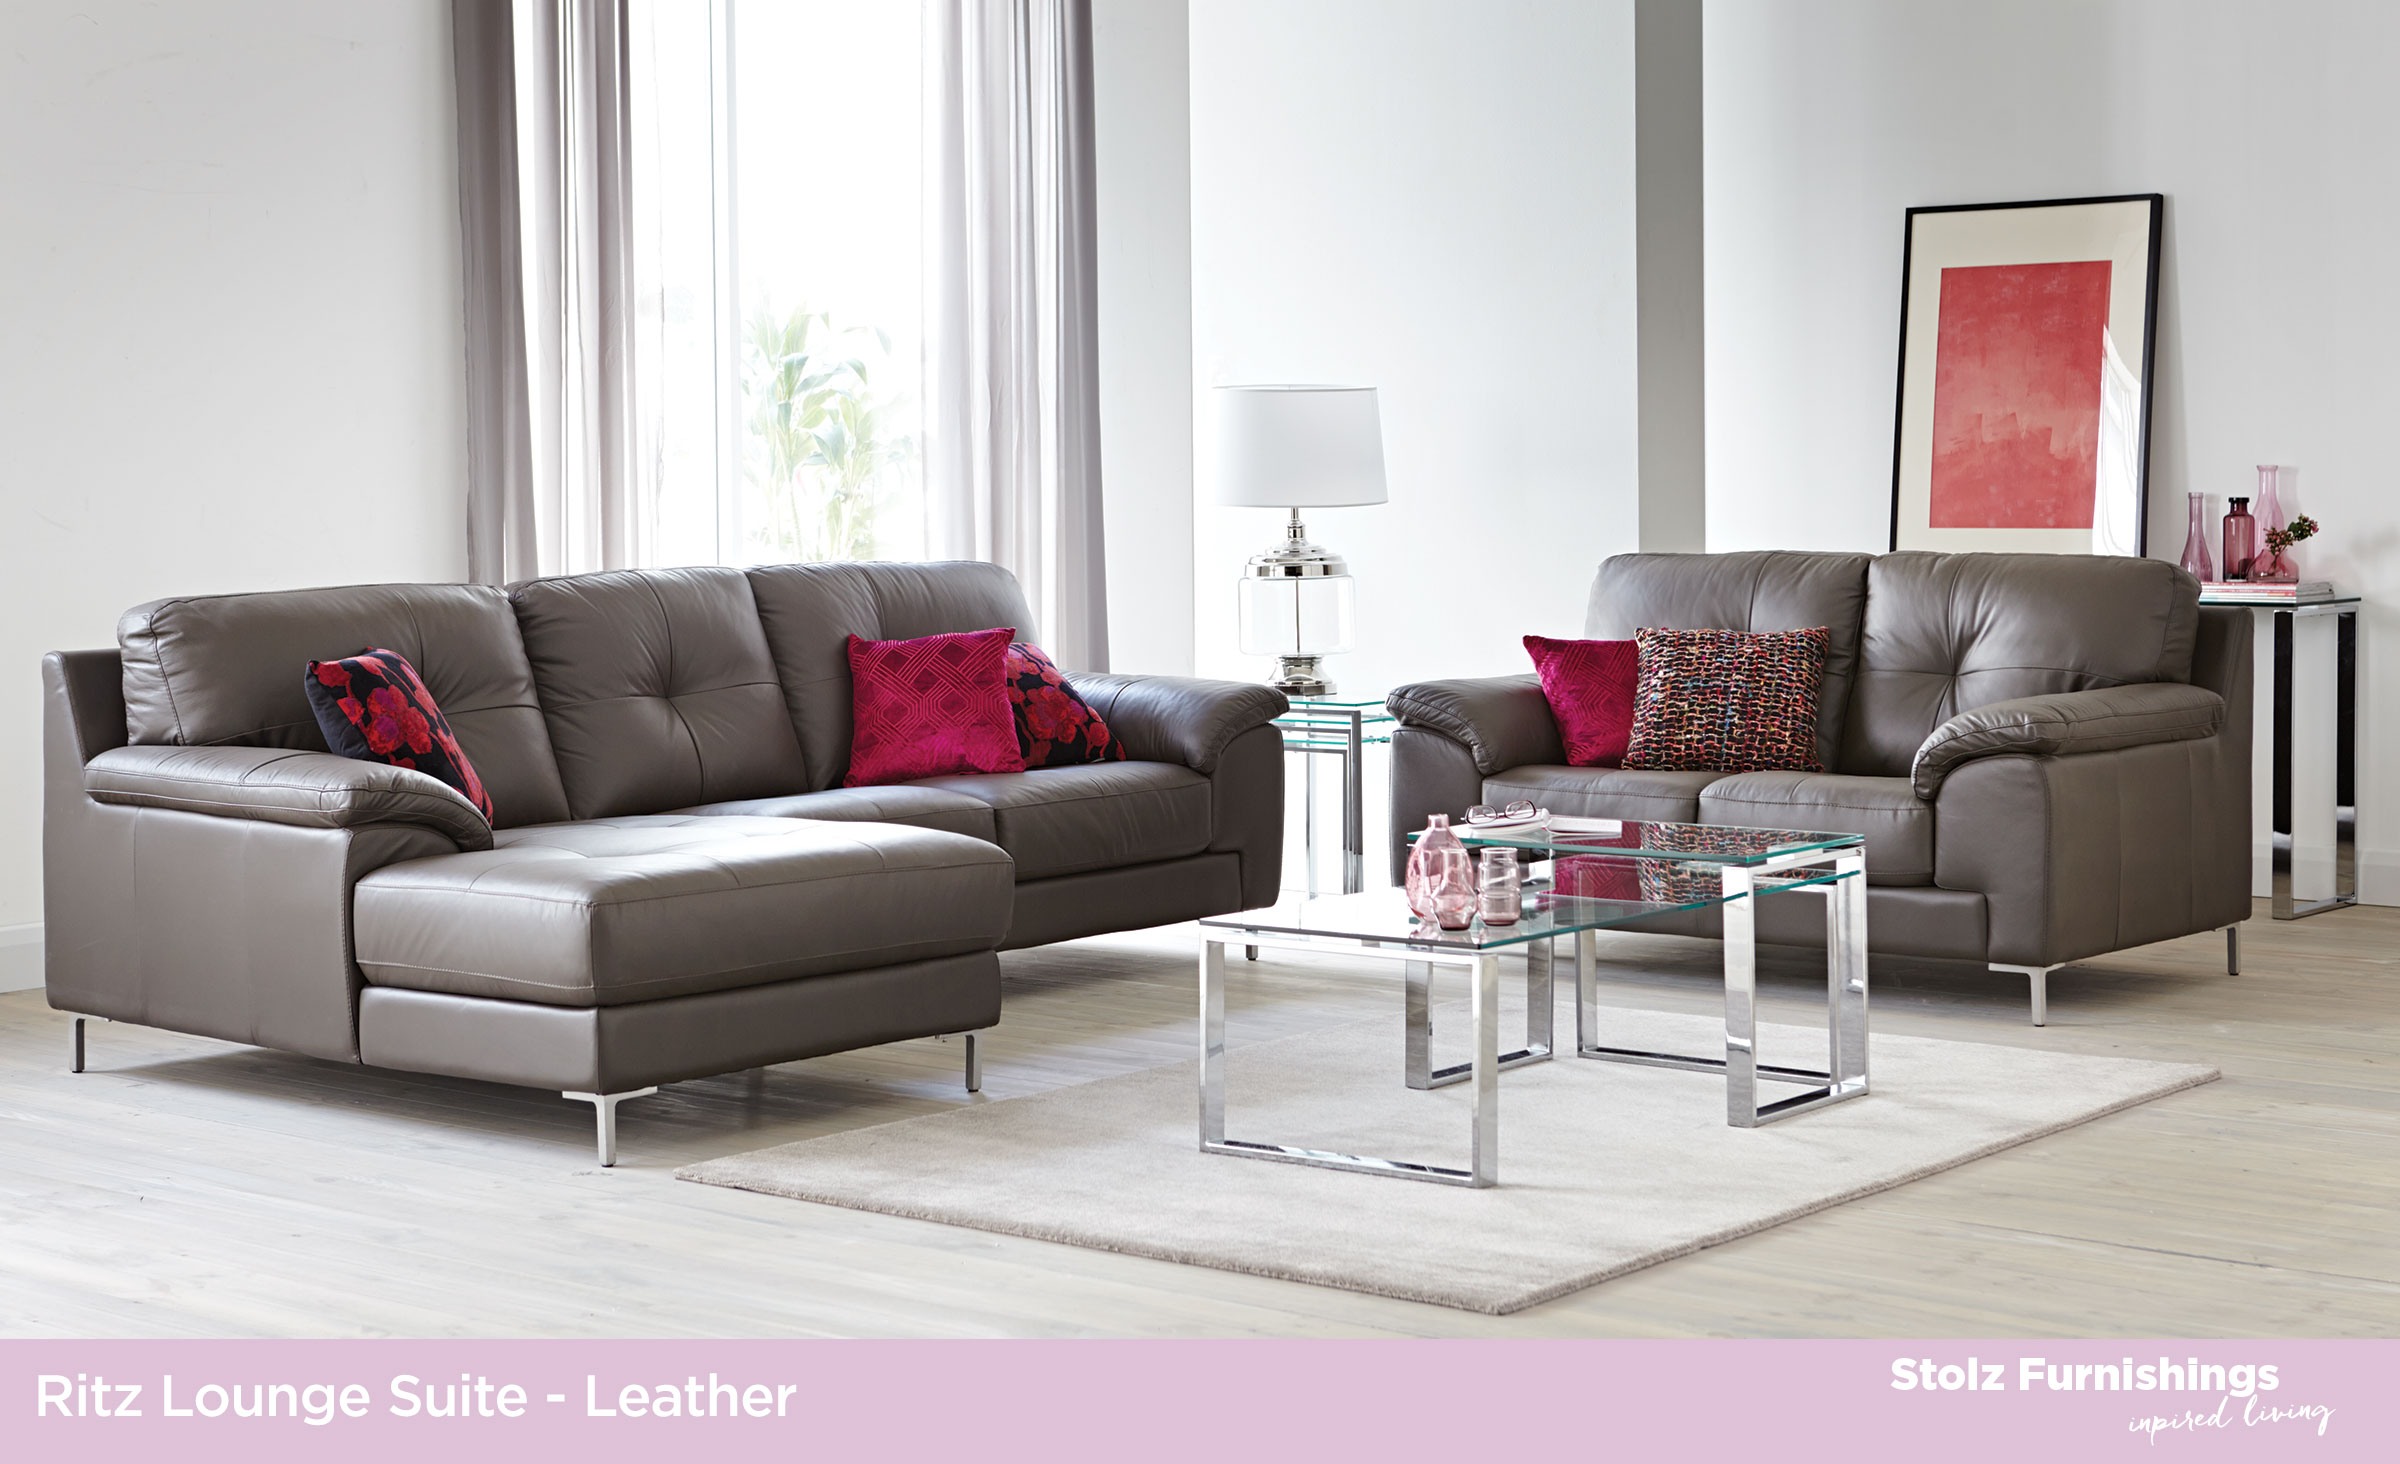 Ritz Lounge Suite - Leather